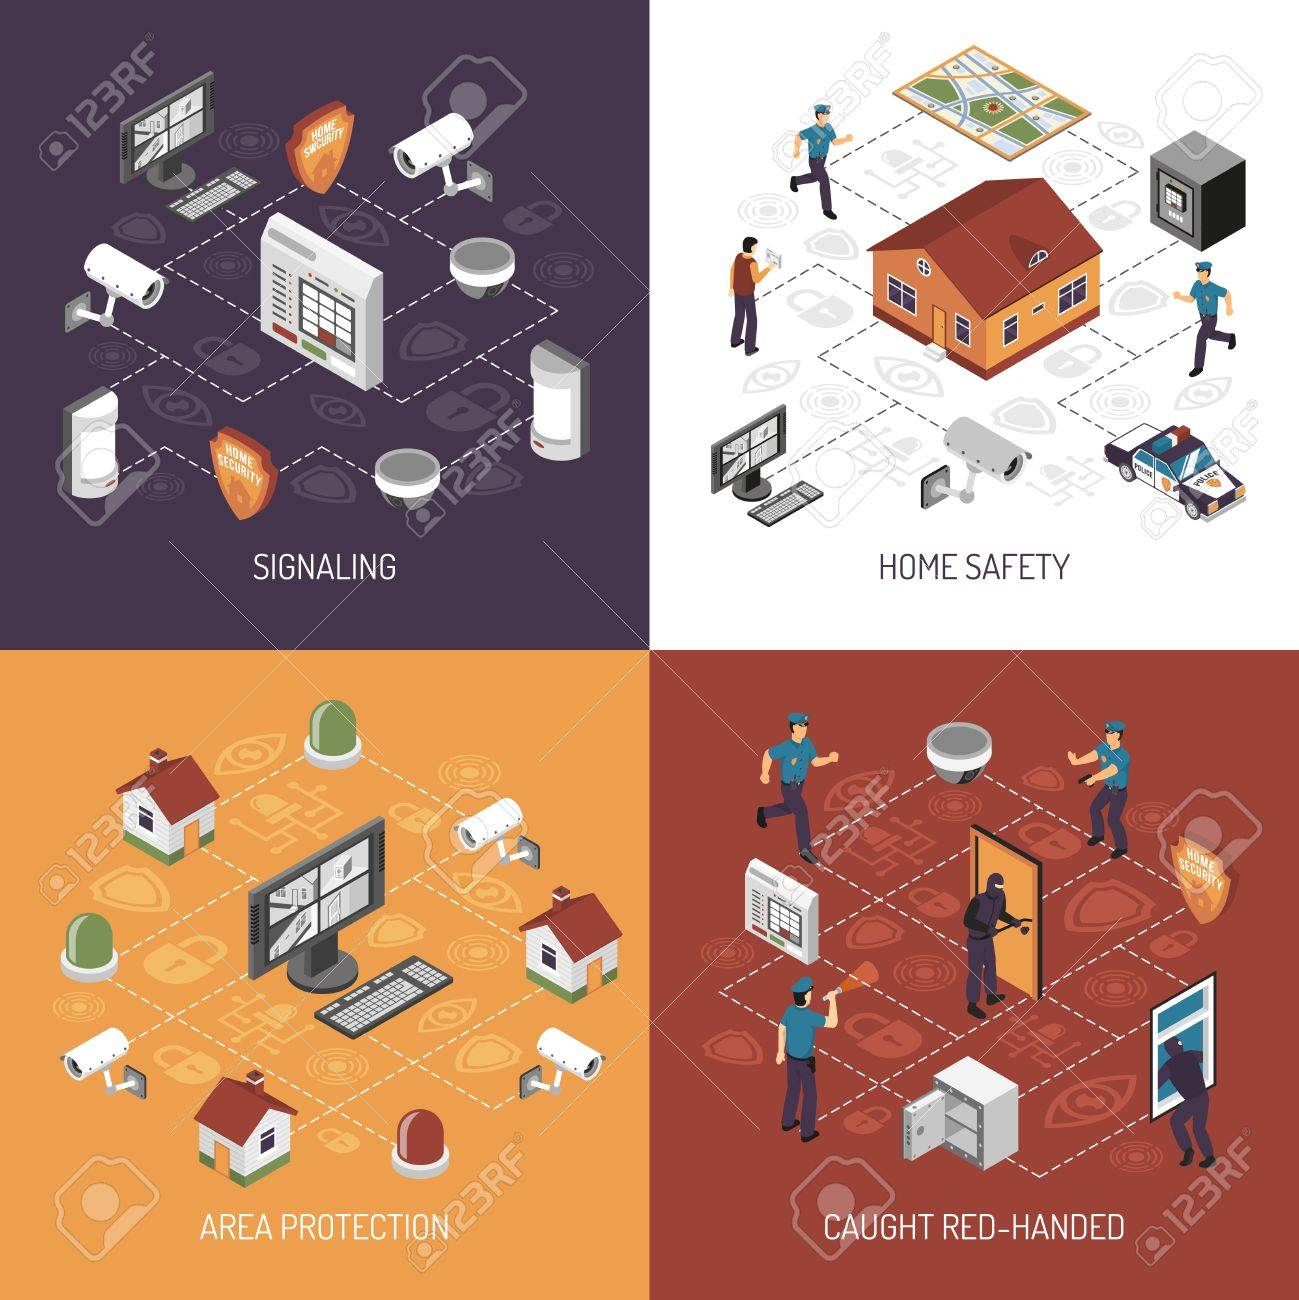 Home Security System Protection In Work Concept 4 Isometric Icons Square  Banner Design Abstract Isolated Vector